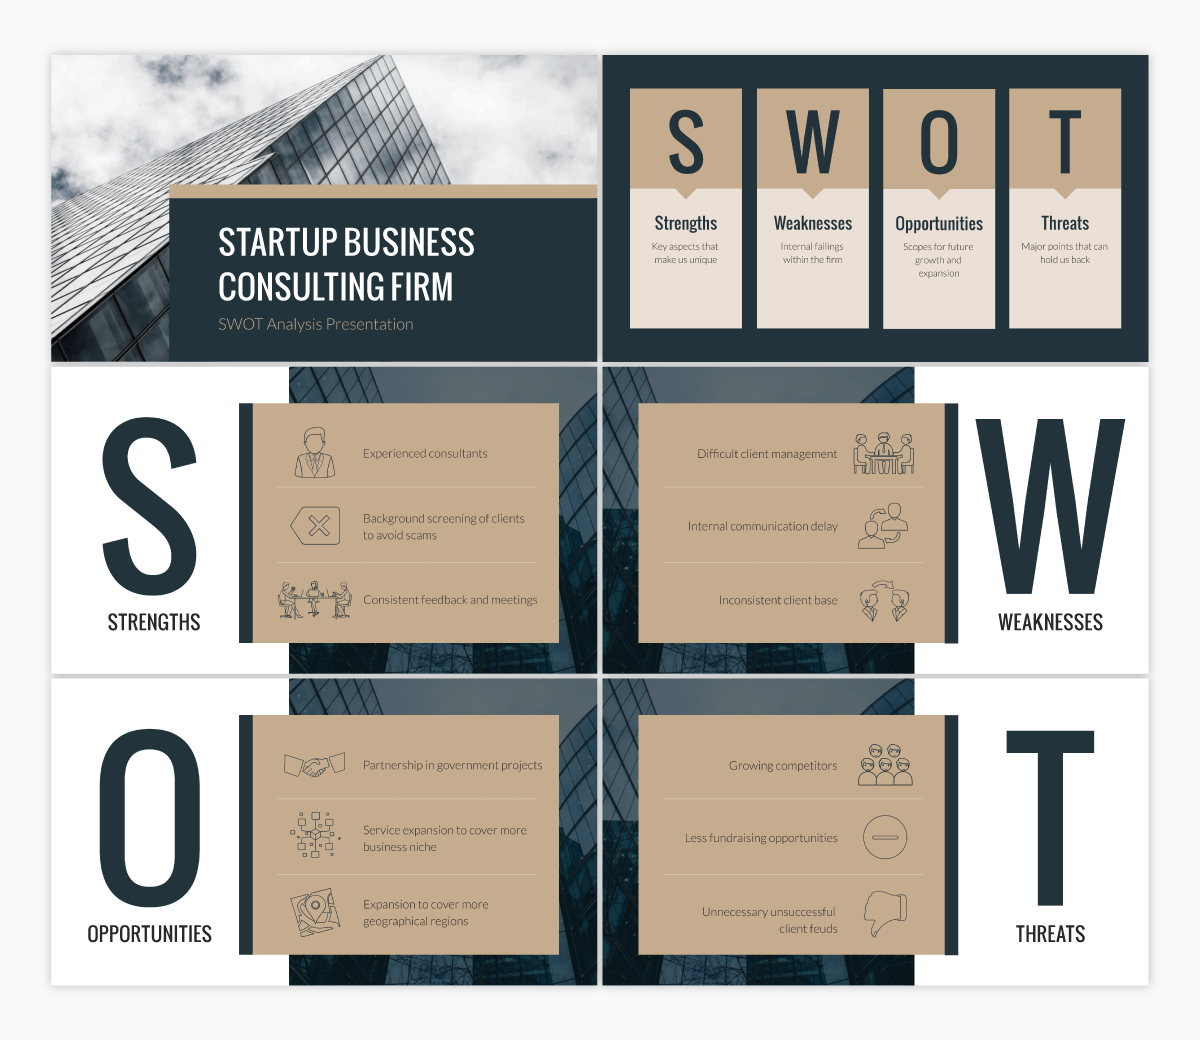 A SWOT analysis keynote template available in Visme.